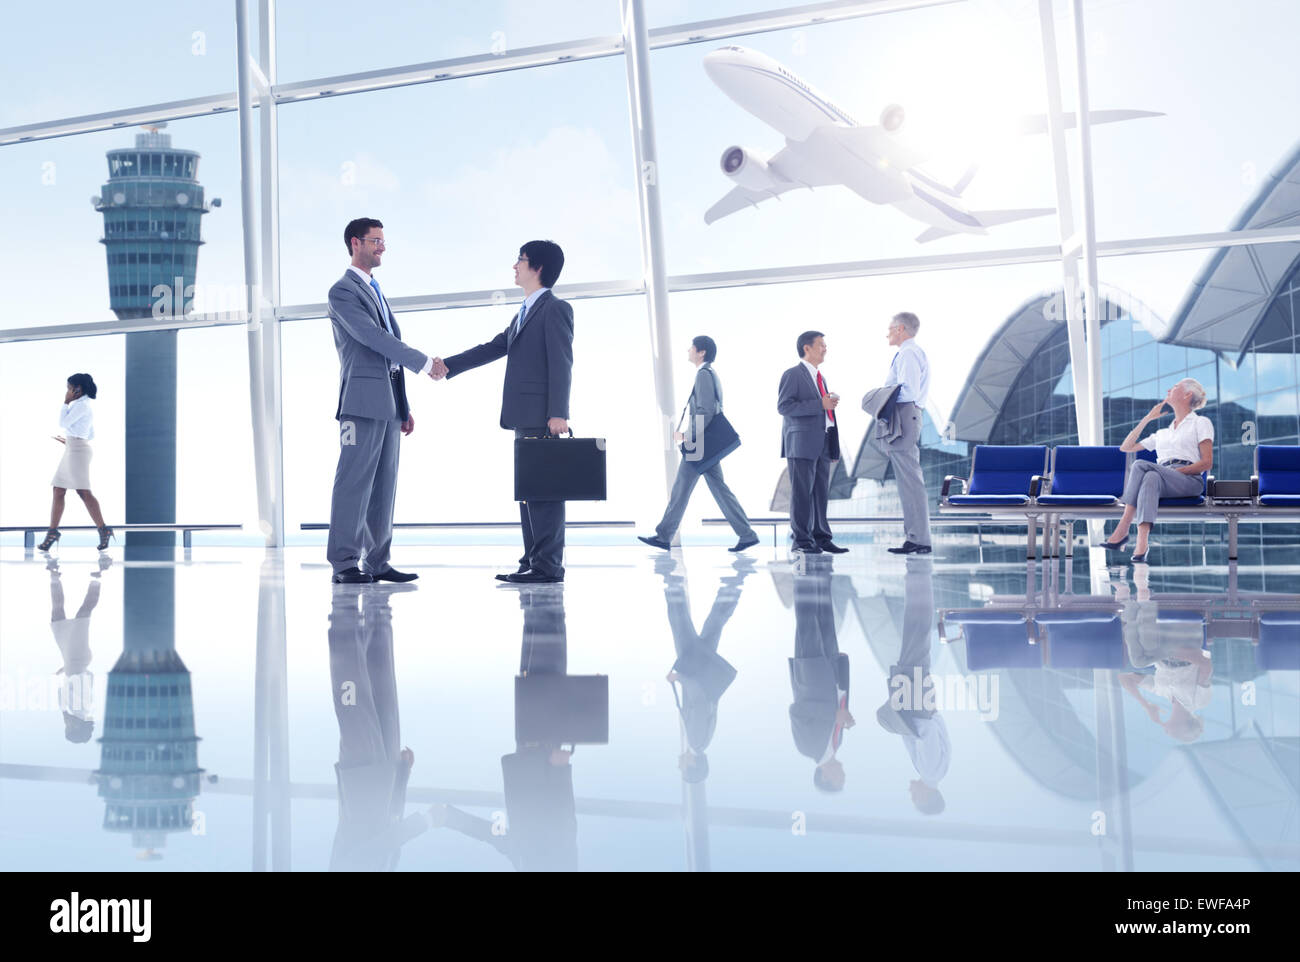 Group of People in the Airport - Stock Image